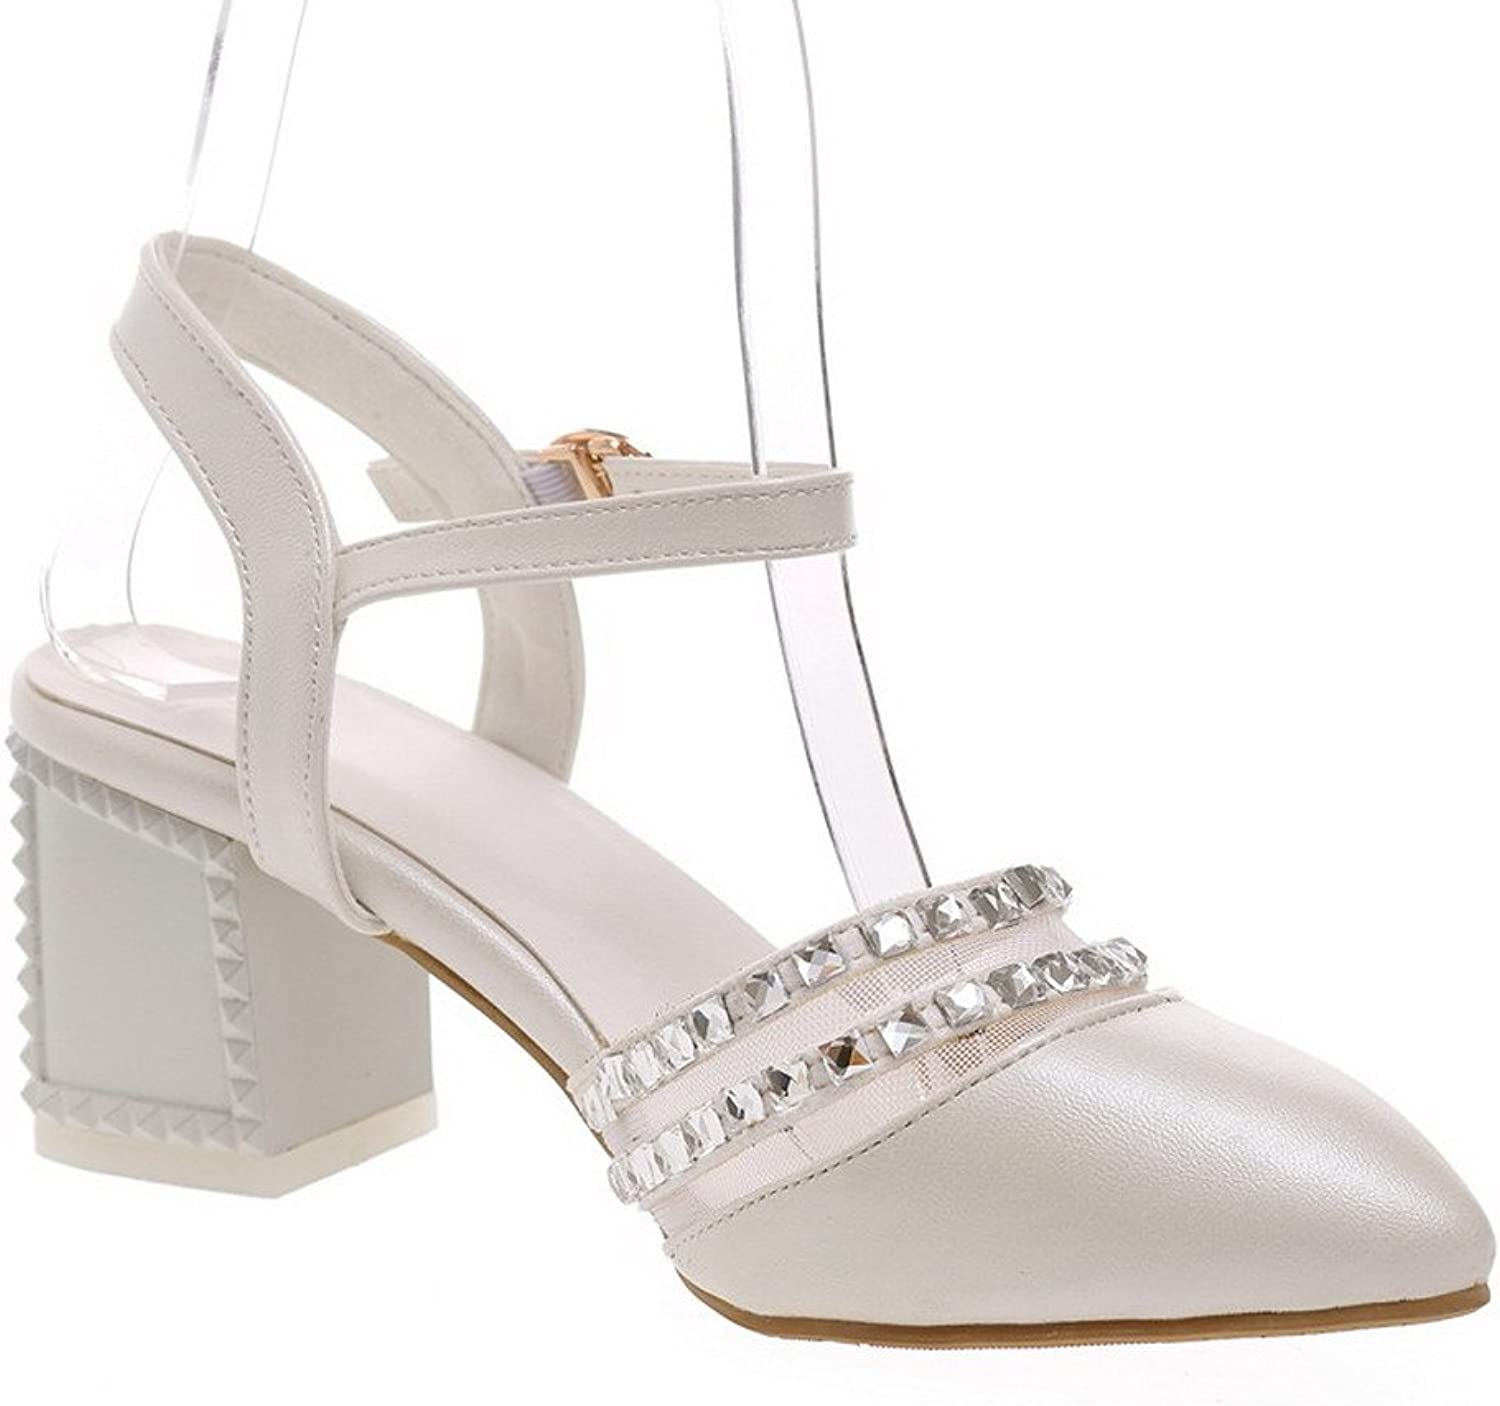 AmoonyFashion Women's Kitten Heels Soft Material Solid Buckle Pointed Toe Sandals